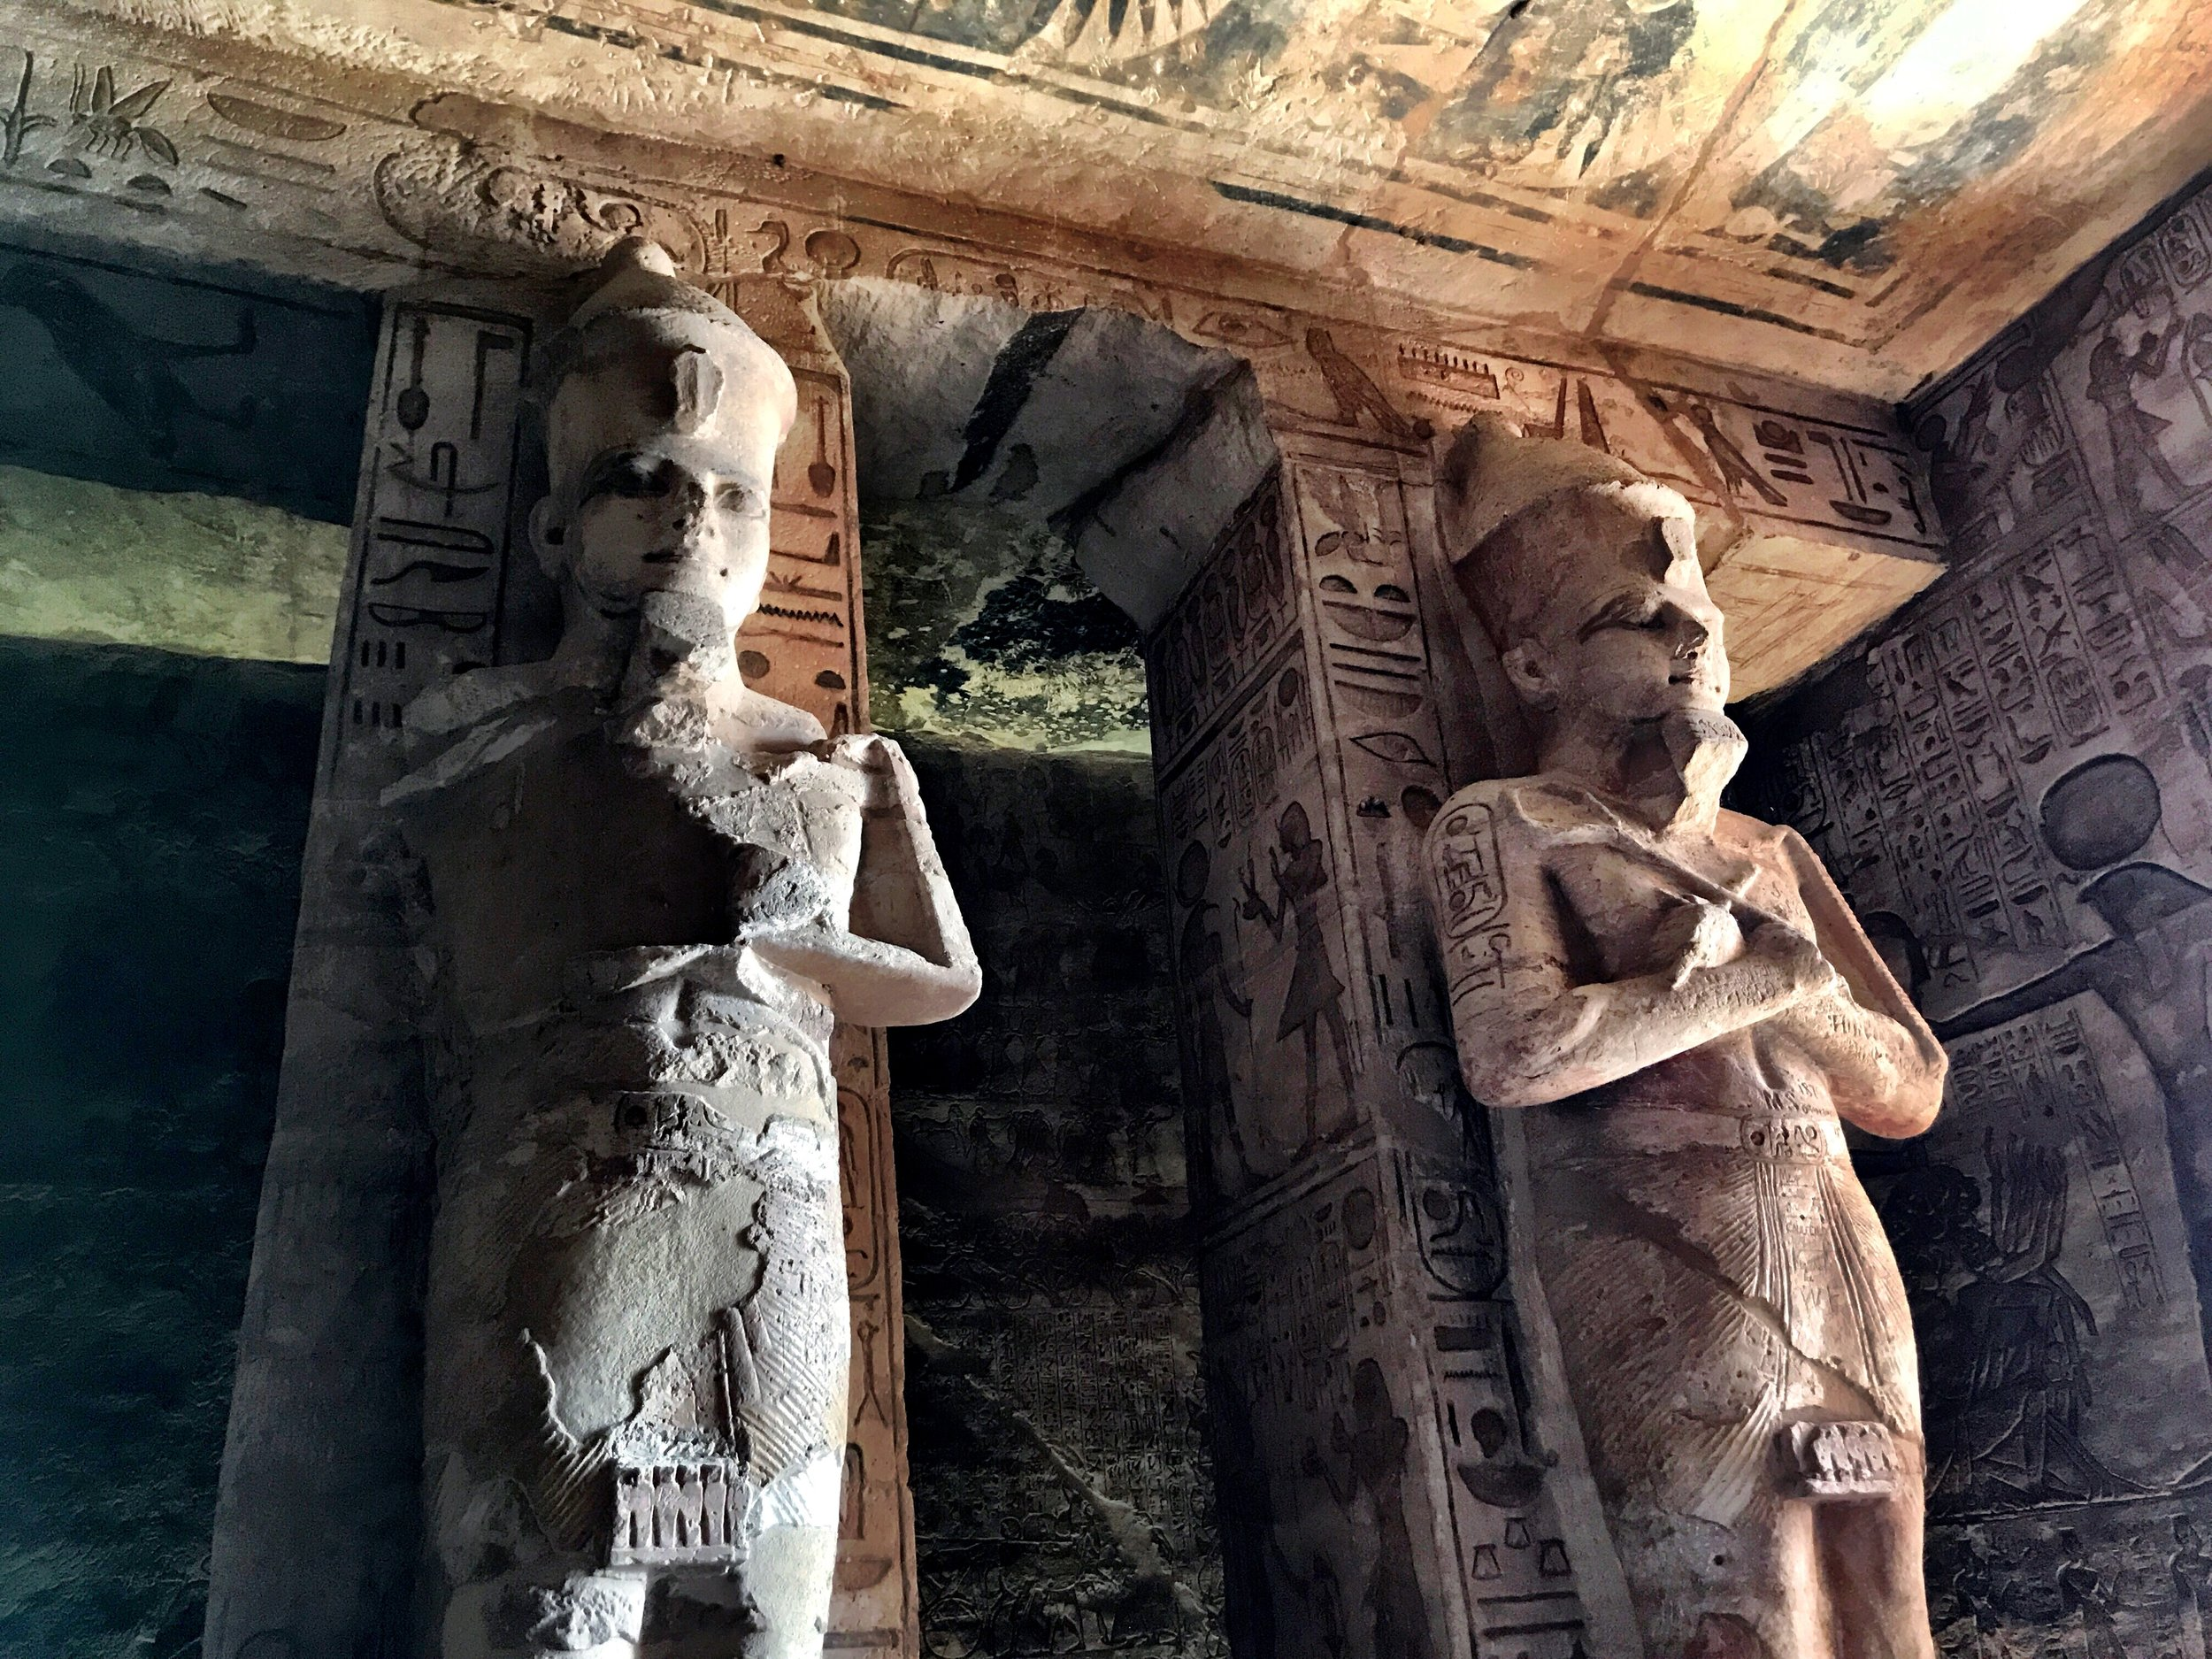 Ramesses II was quite the egotist — his image is all over the temple